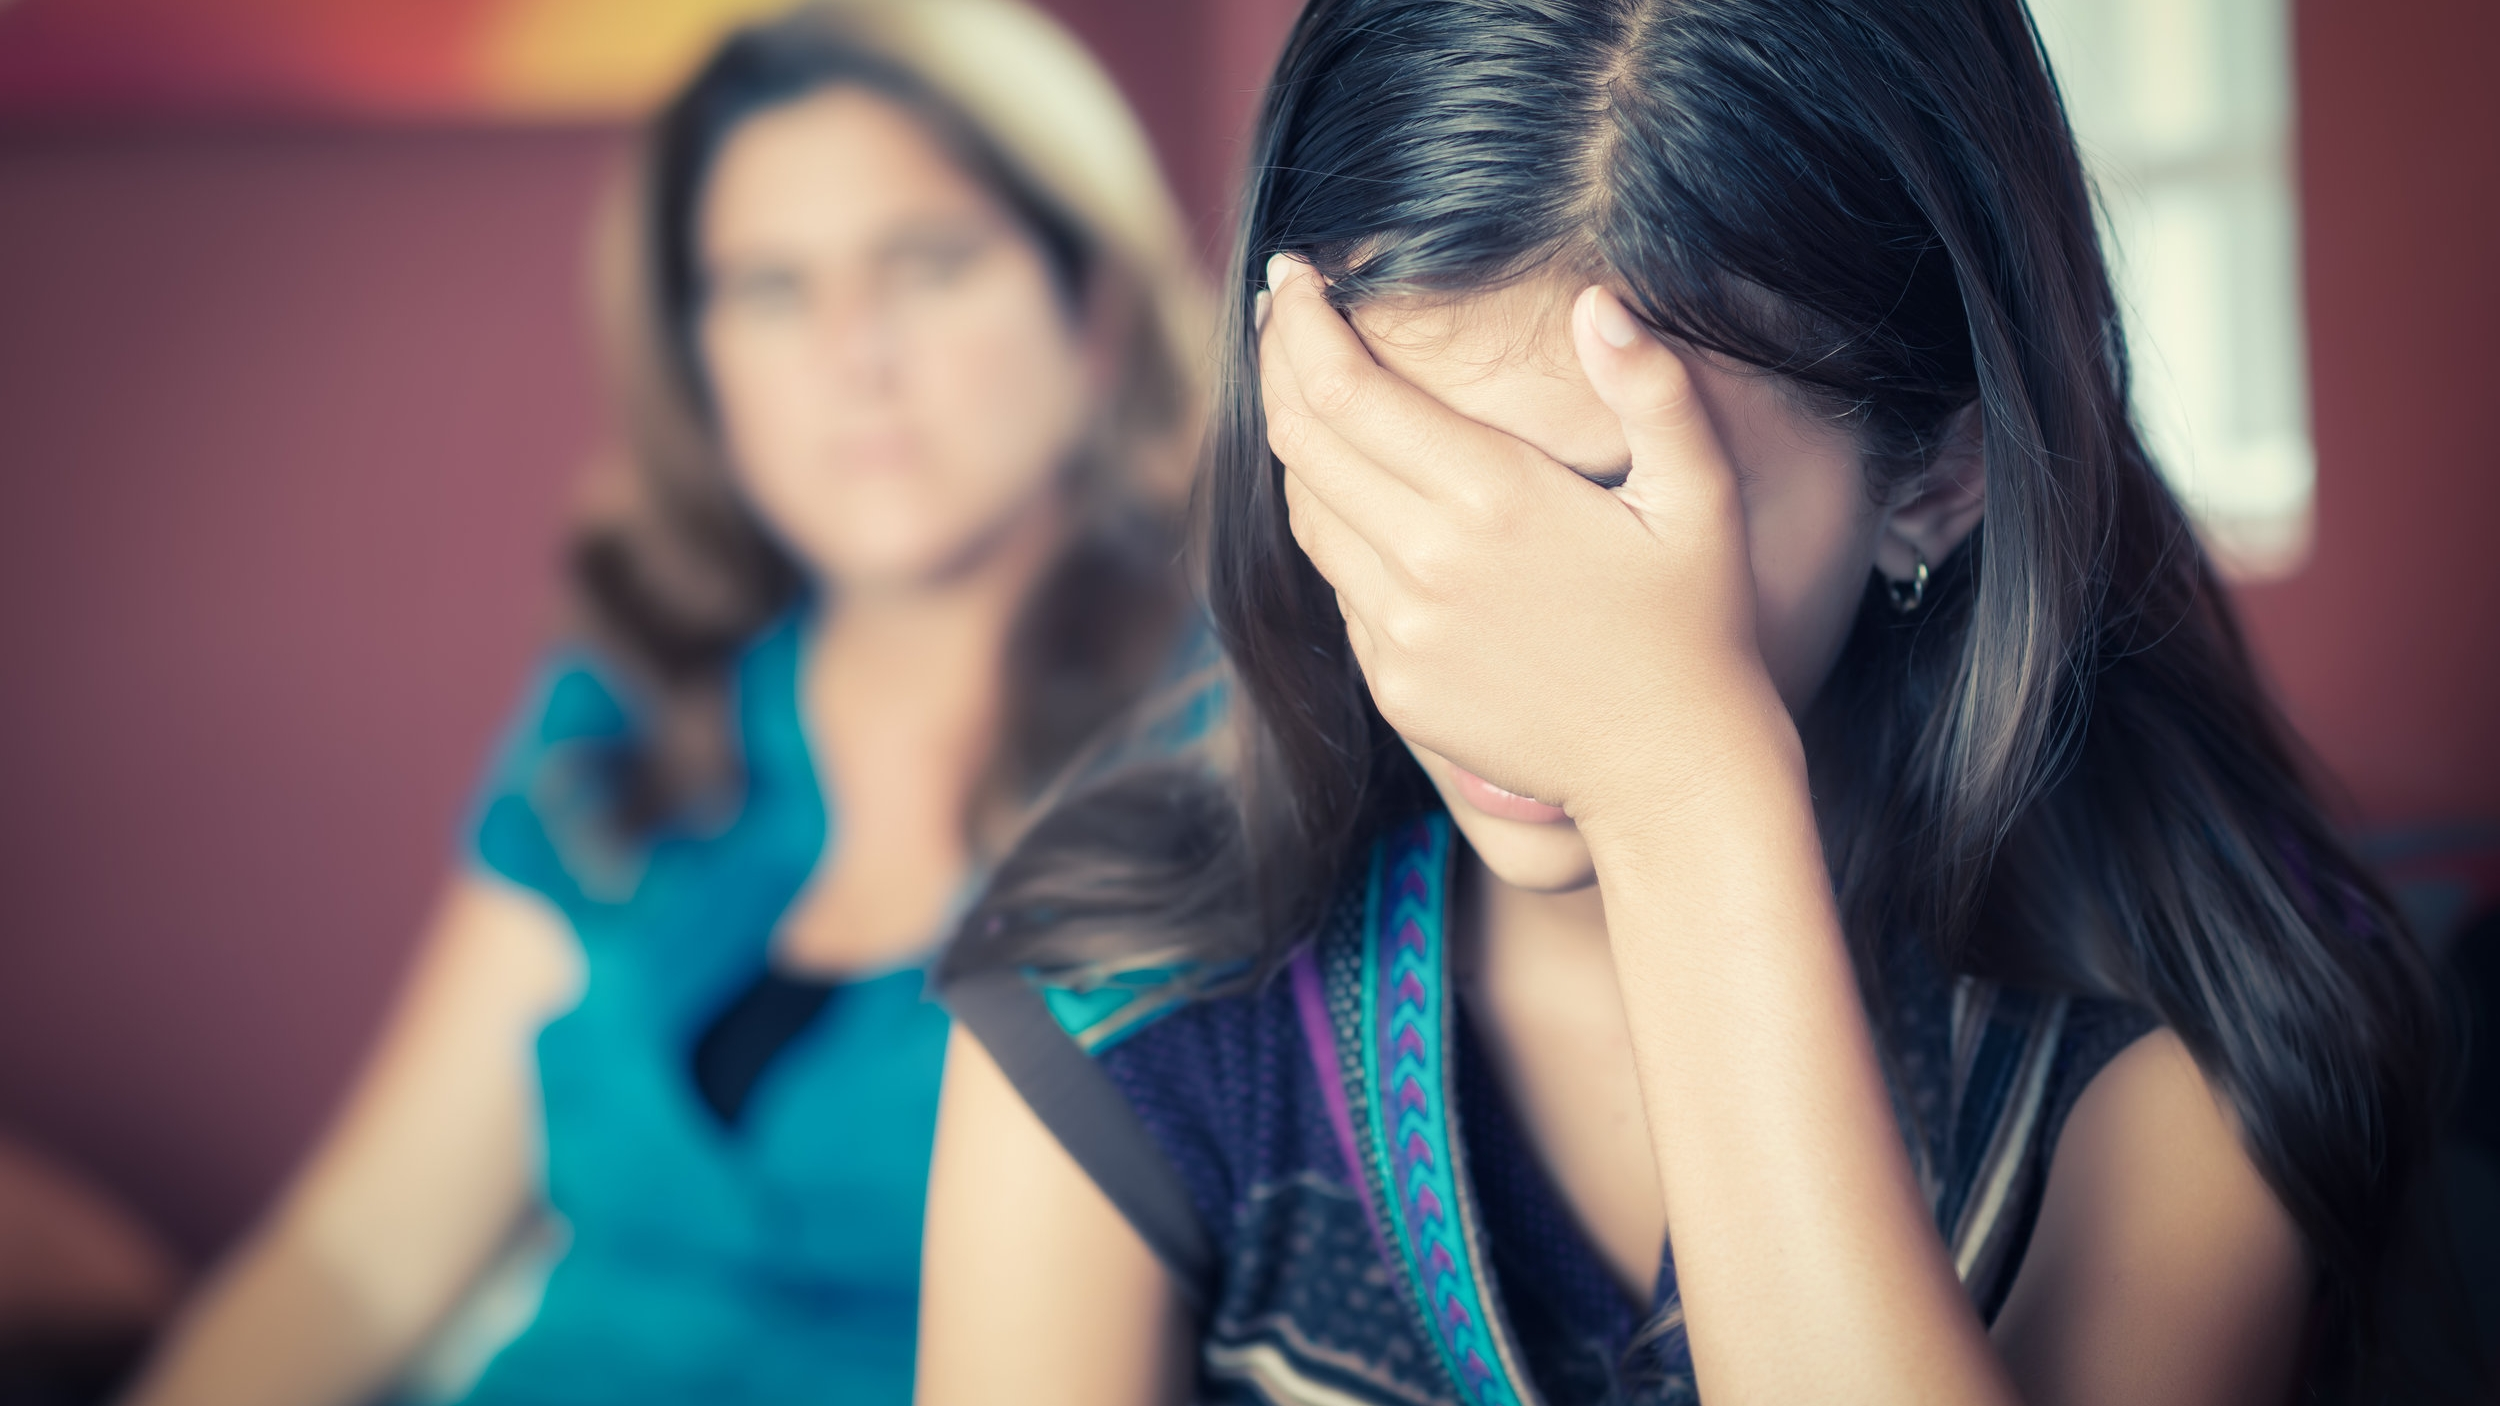 11_ShSt_stock-photo-teenager-problems-teenage-girl-cries-while-her-mother-looks-at-her-on-the-background-210886186.jpg